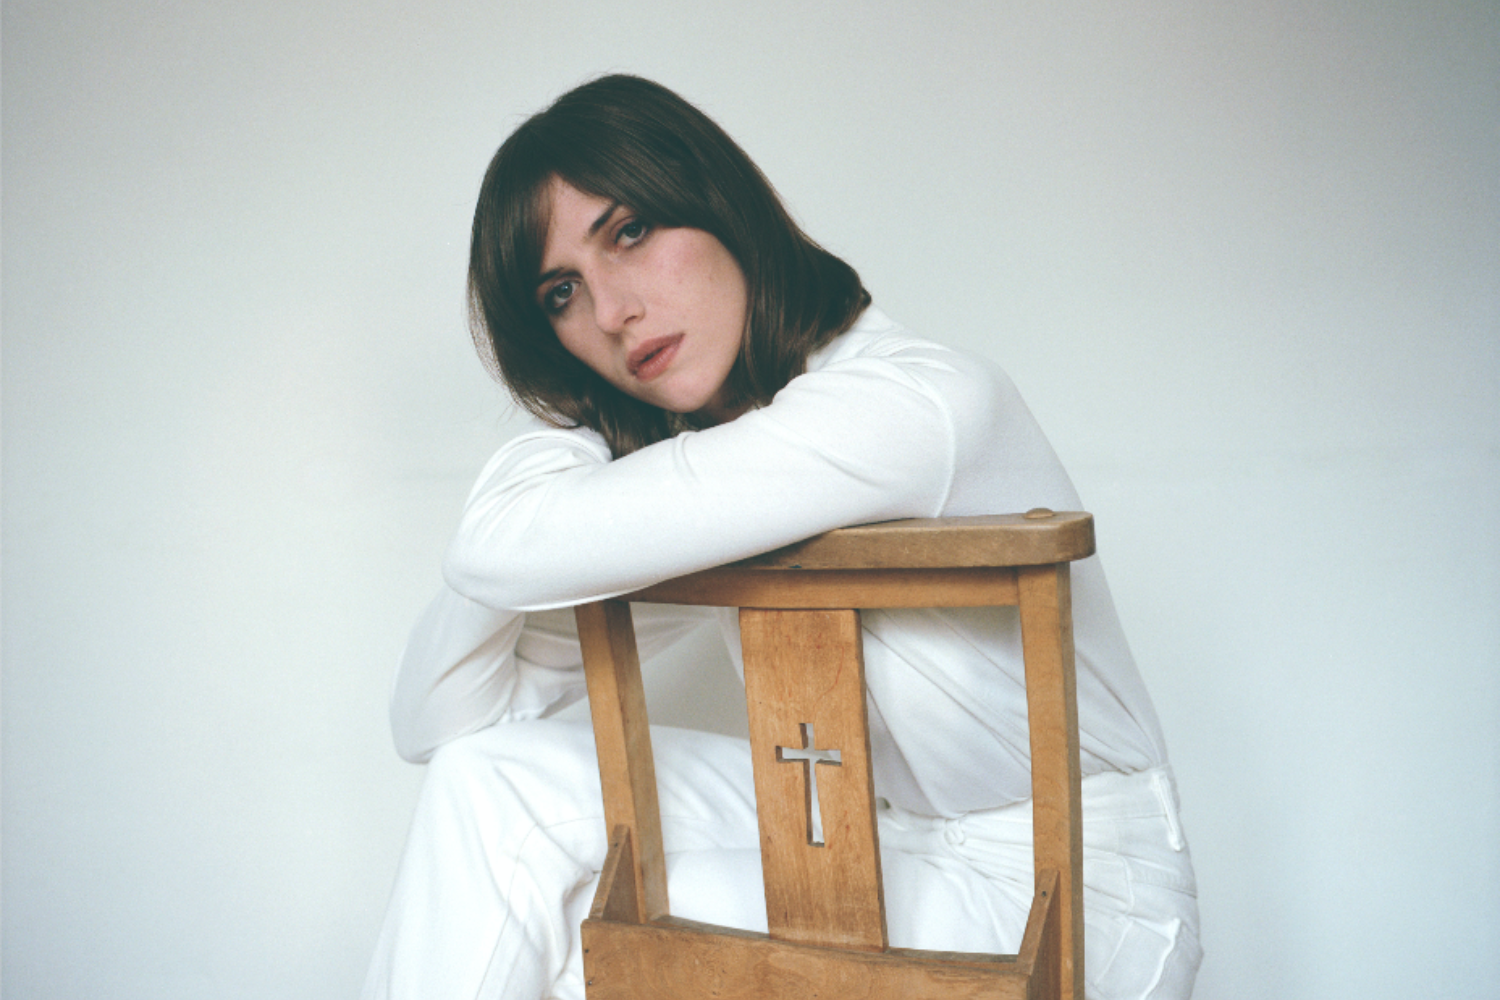 Aldous Harding announces new album 'Designer'